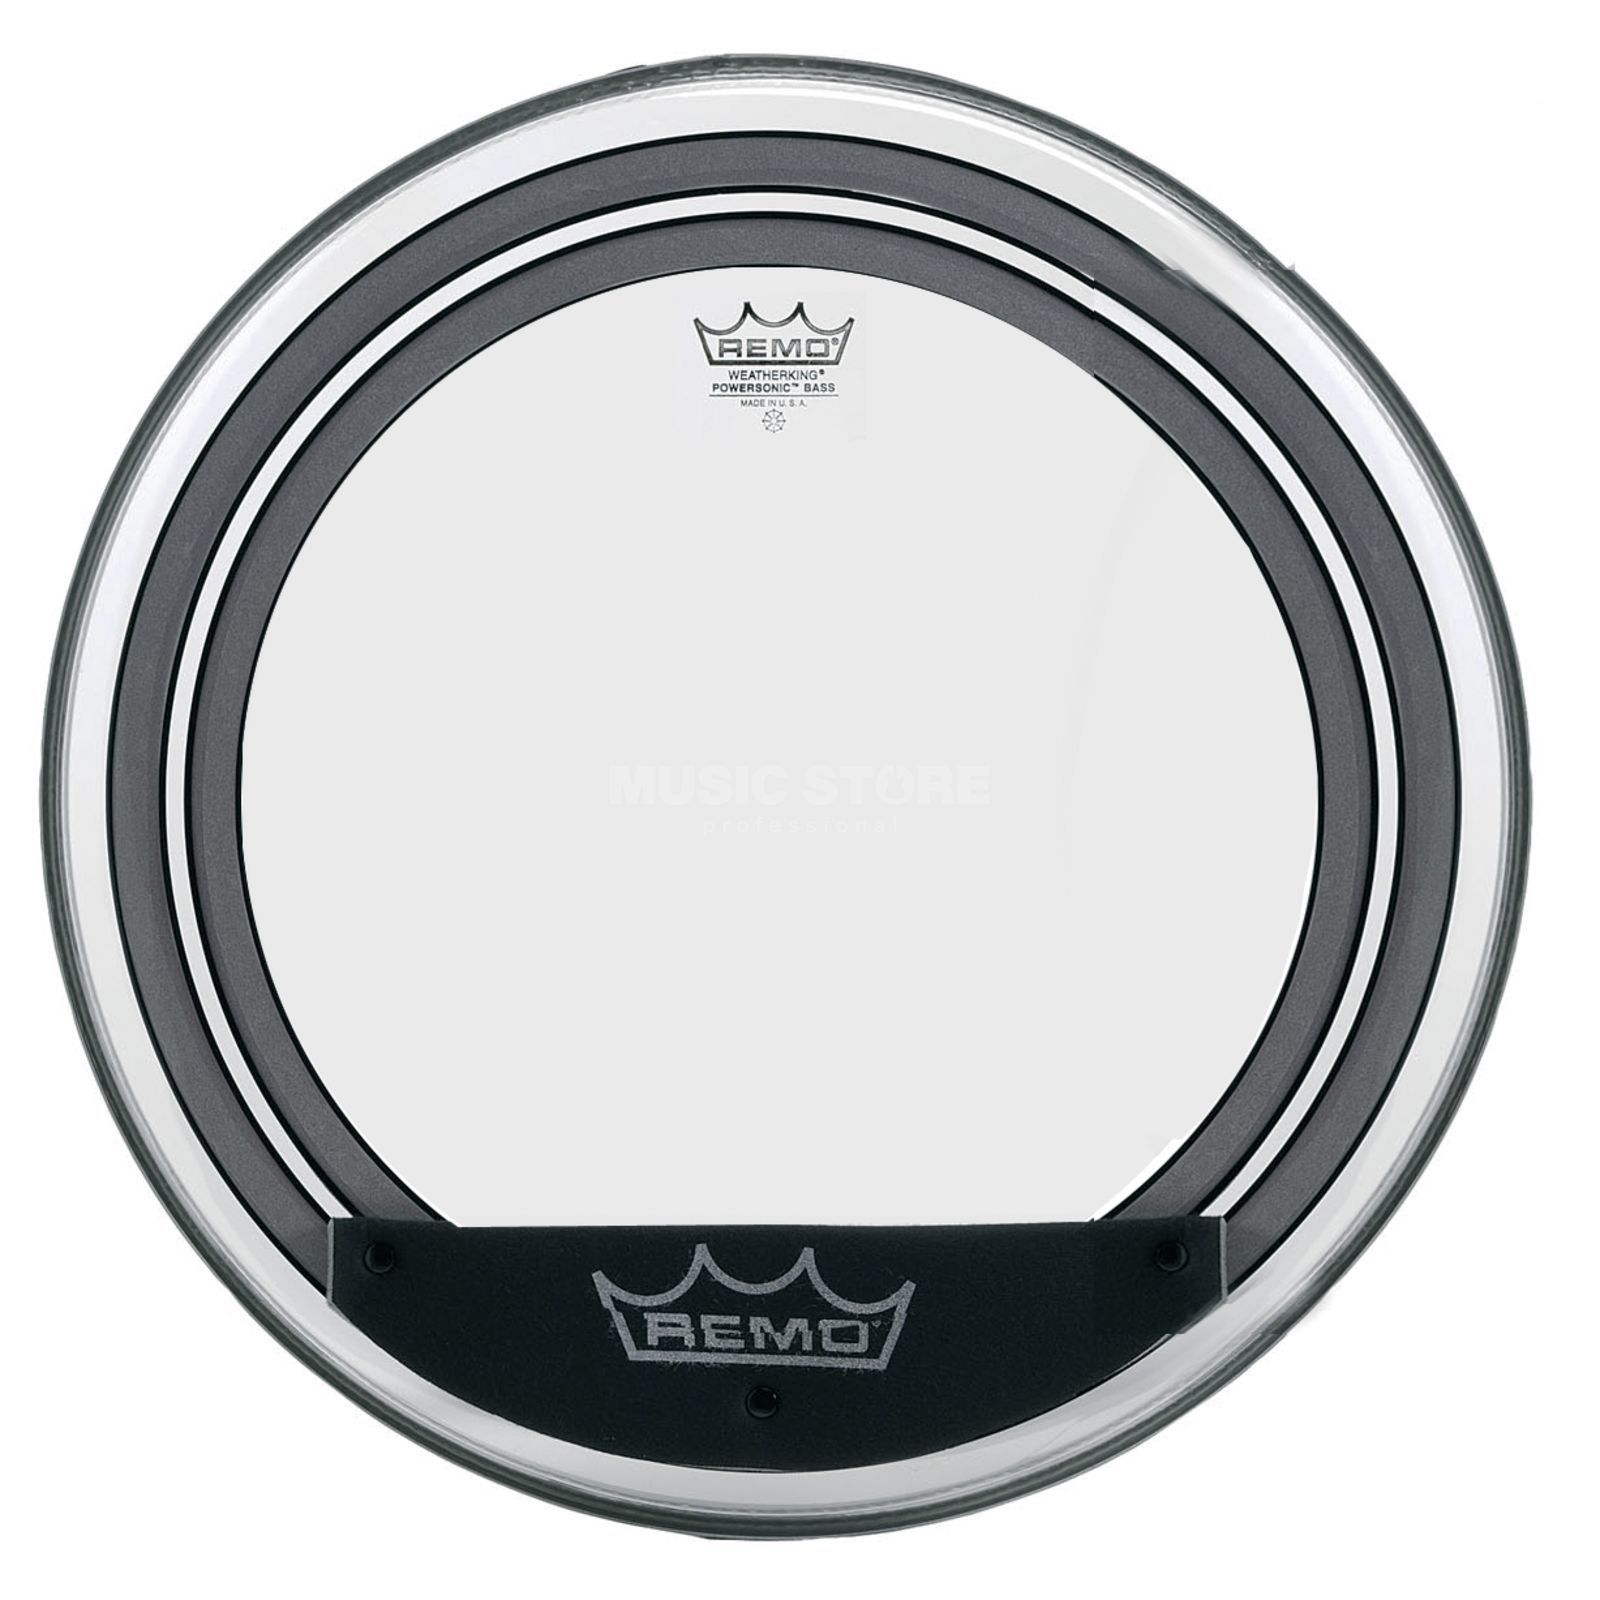 "Remo Powersonic 20"", clear, BassDrum Batter Imagen del producto"